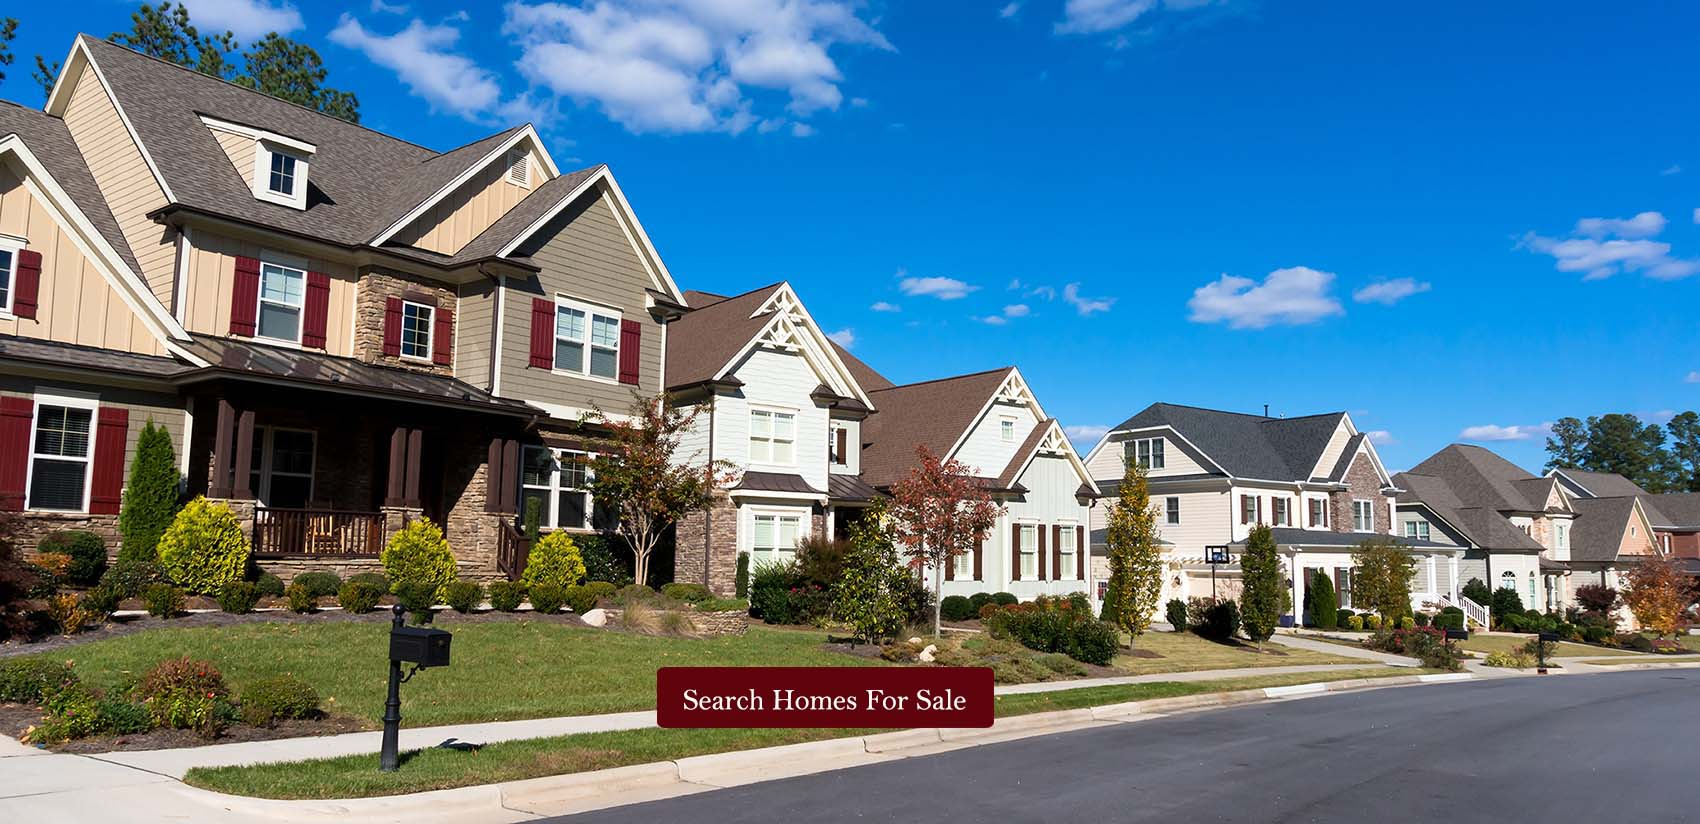 SPM Real Estate Homes For Sale